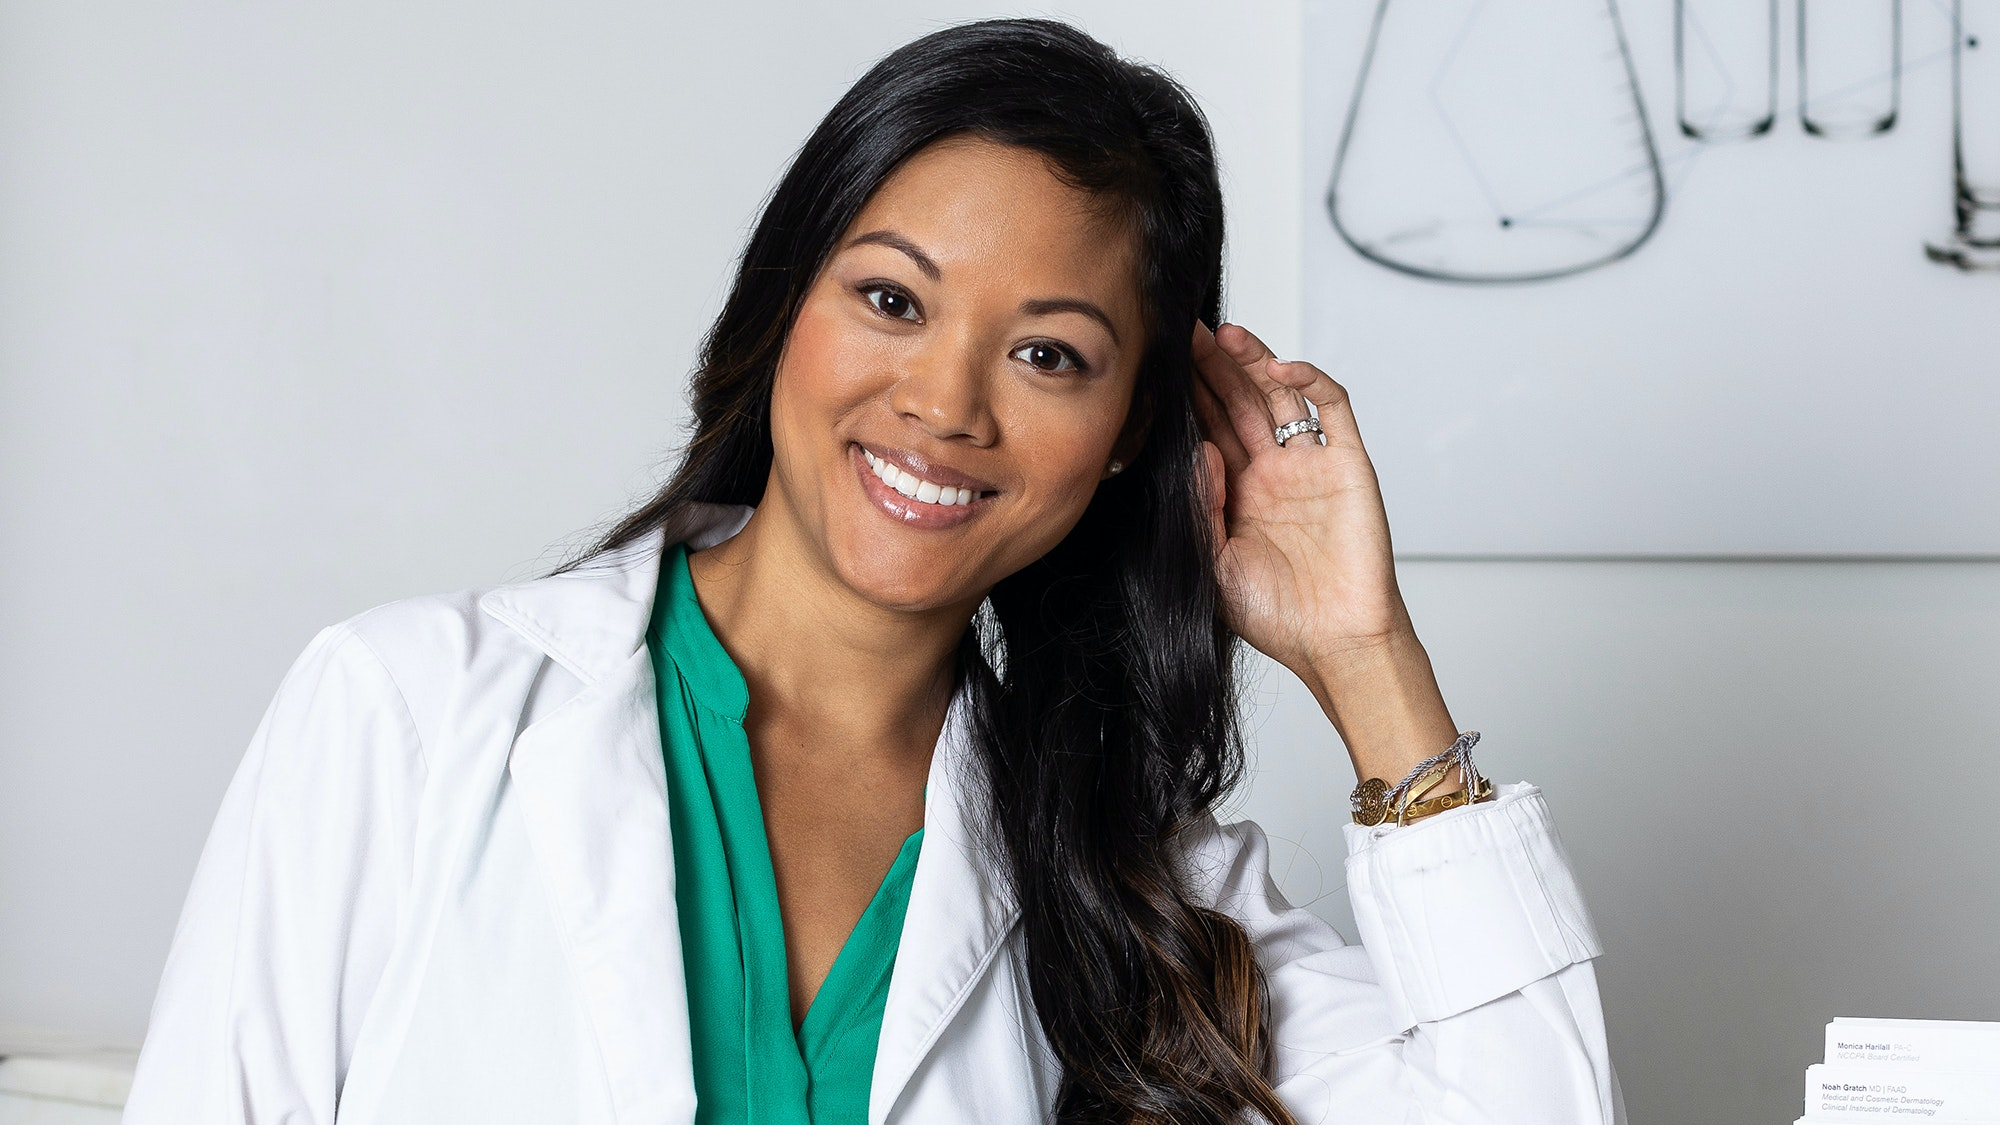 Motherhood, Medical Dermatology, and More — According to Dermatologist Dr. Tiffany Jow Libby